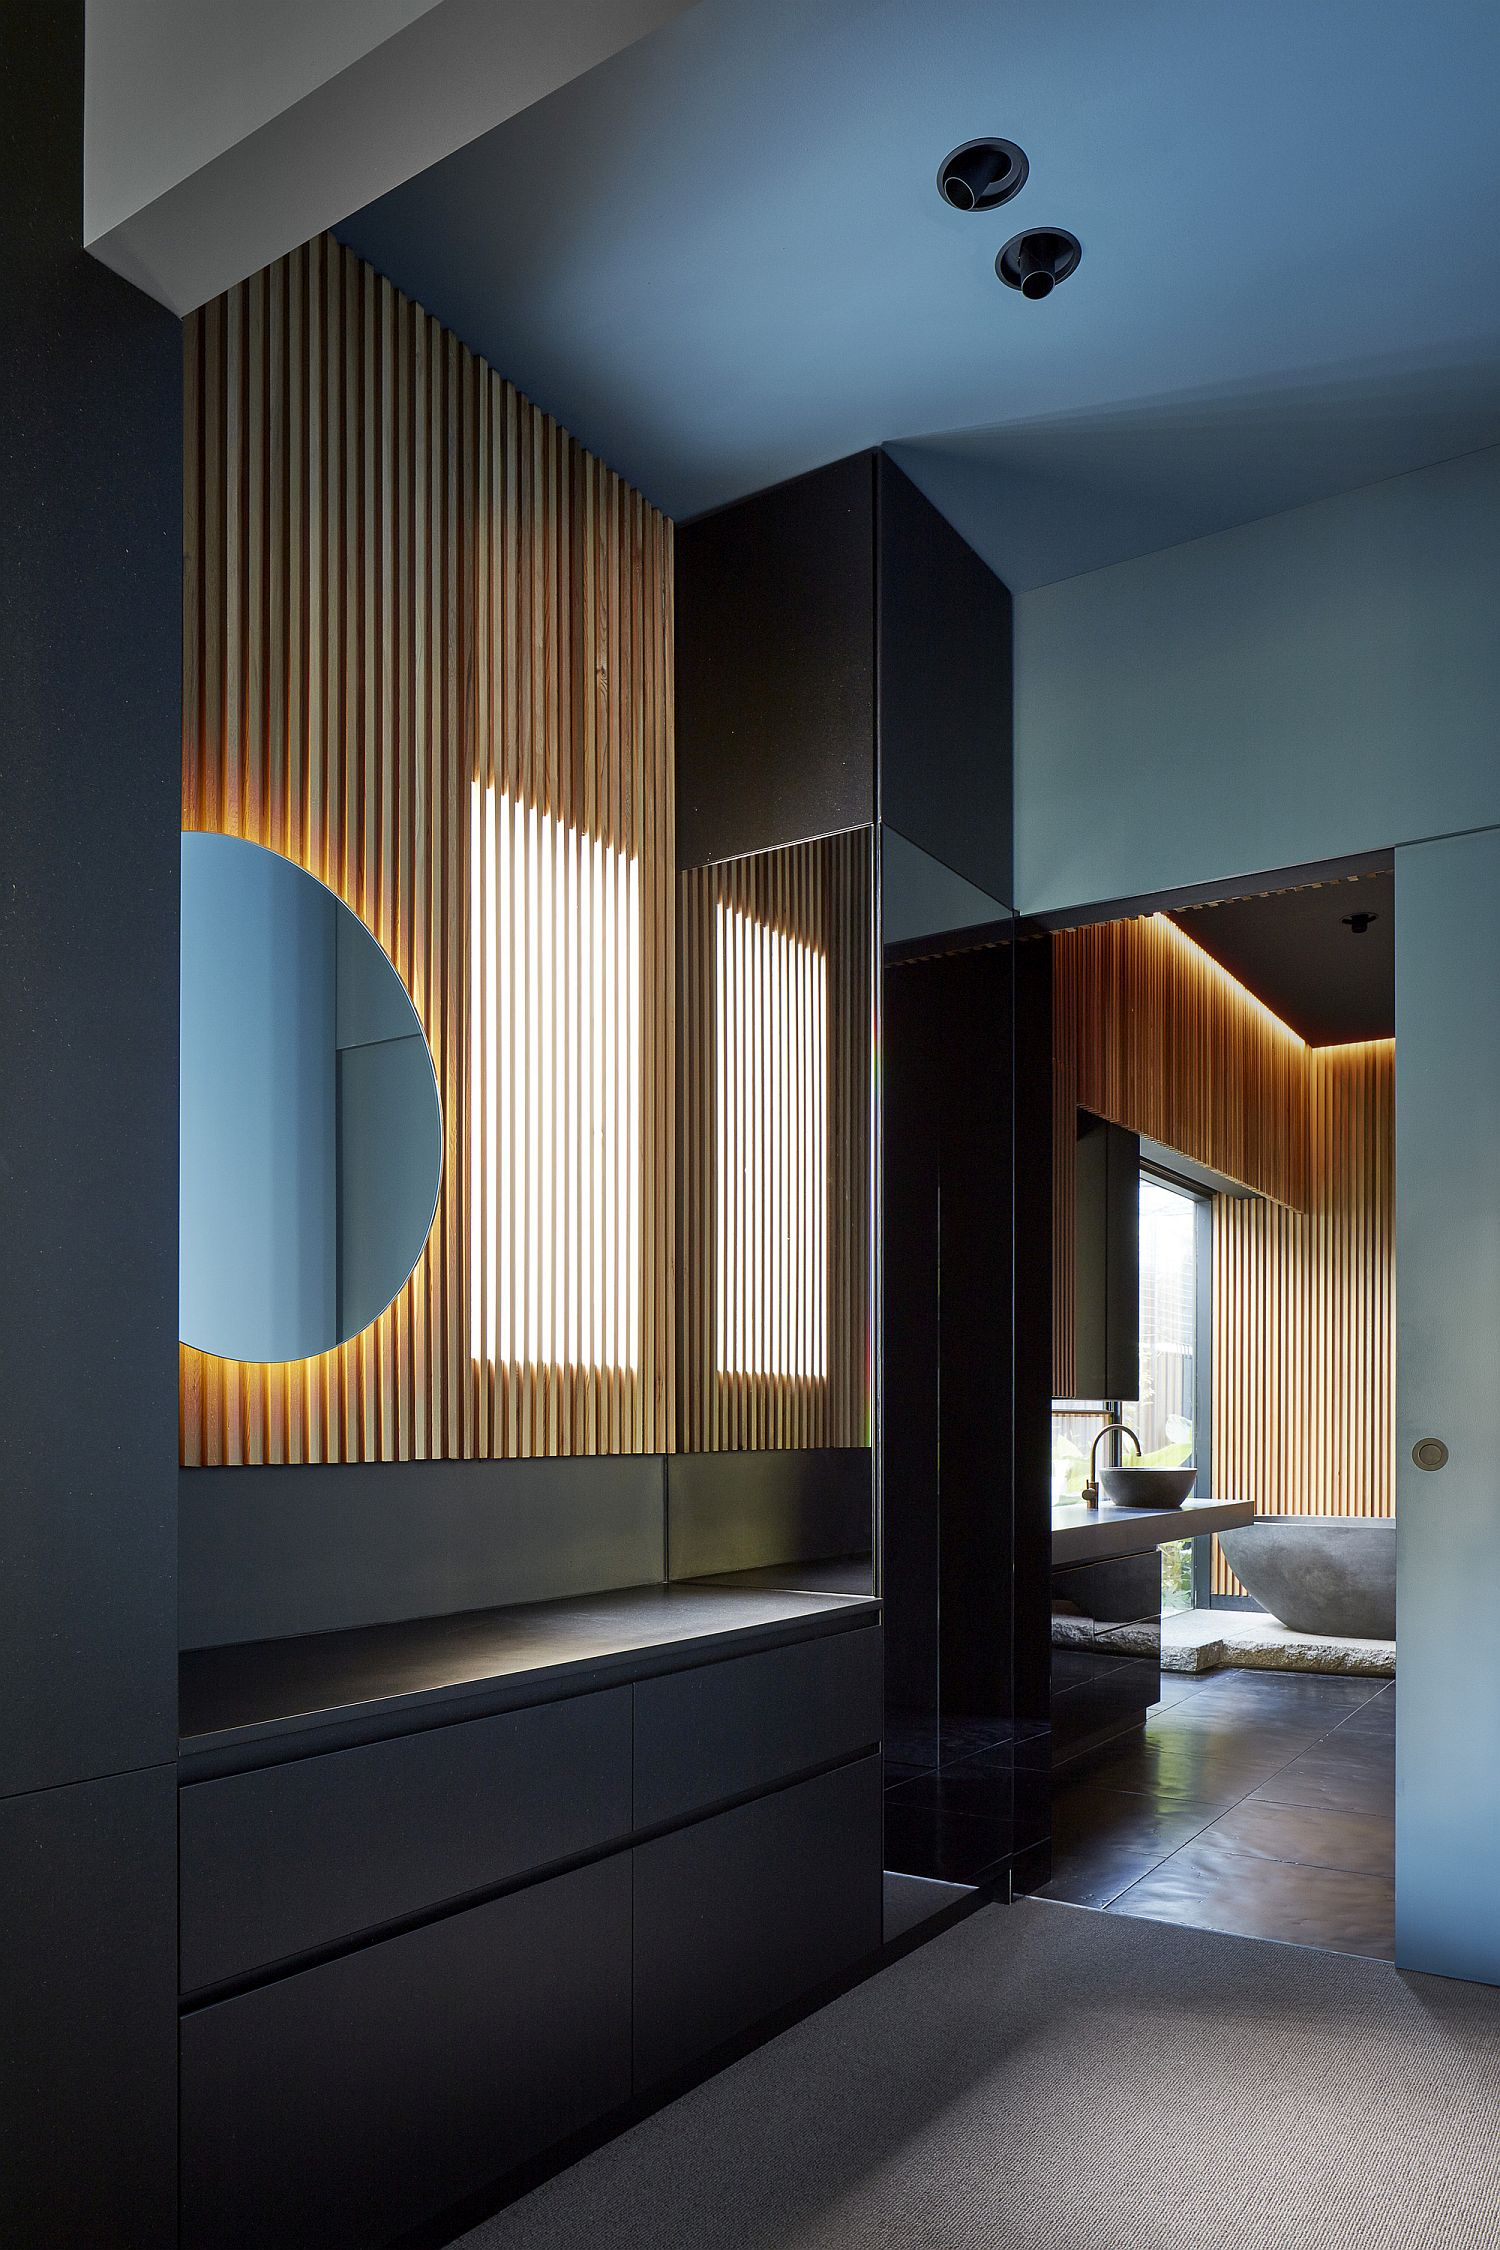 Wooden-slats-and-round-mirror-accentuated-by-brilliant-use-of-lighting